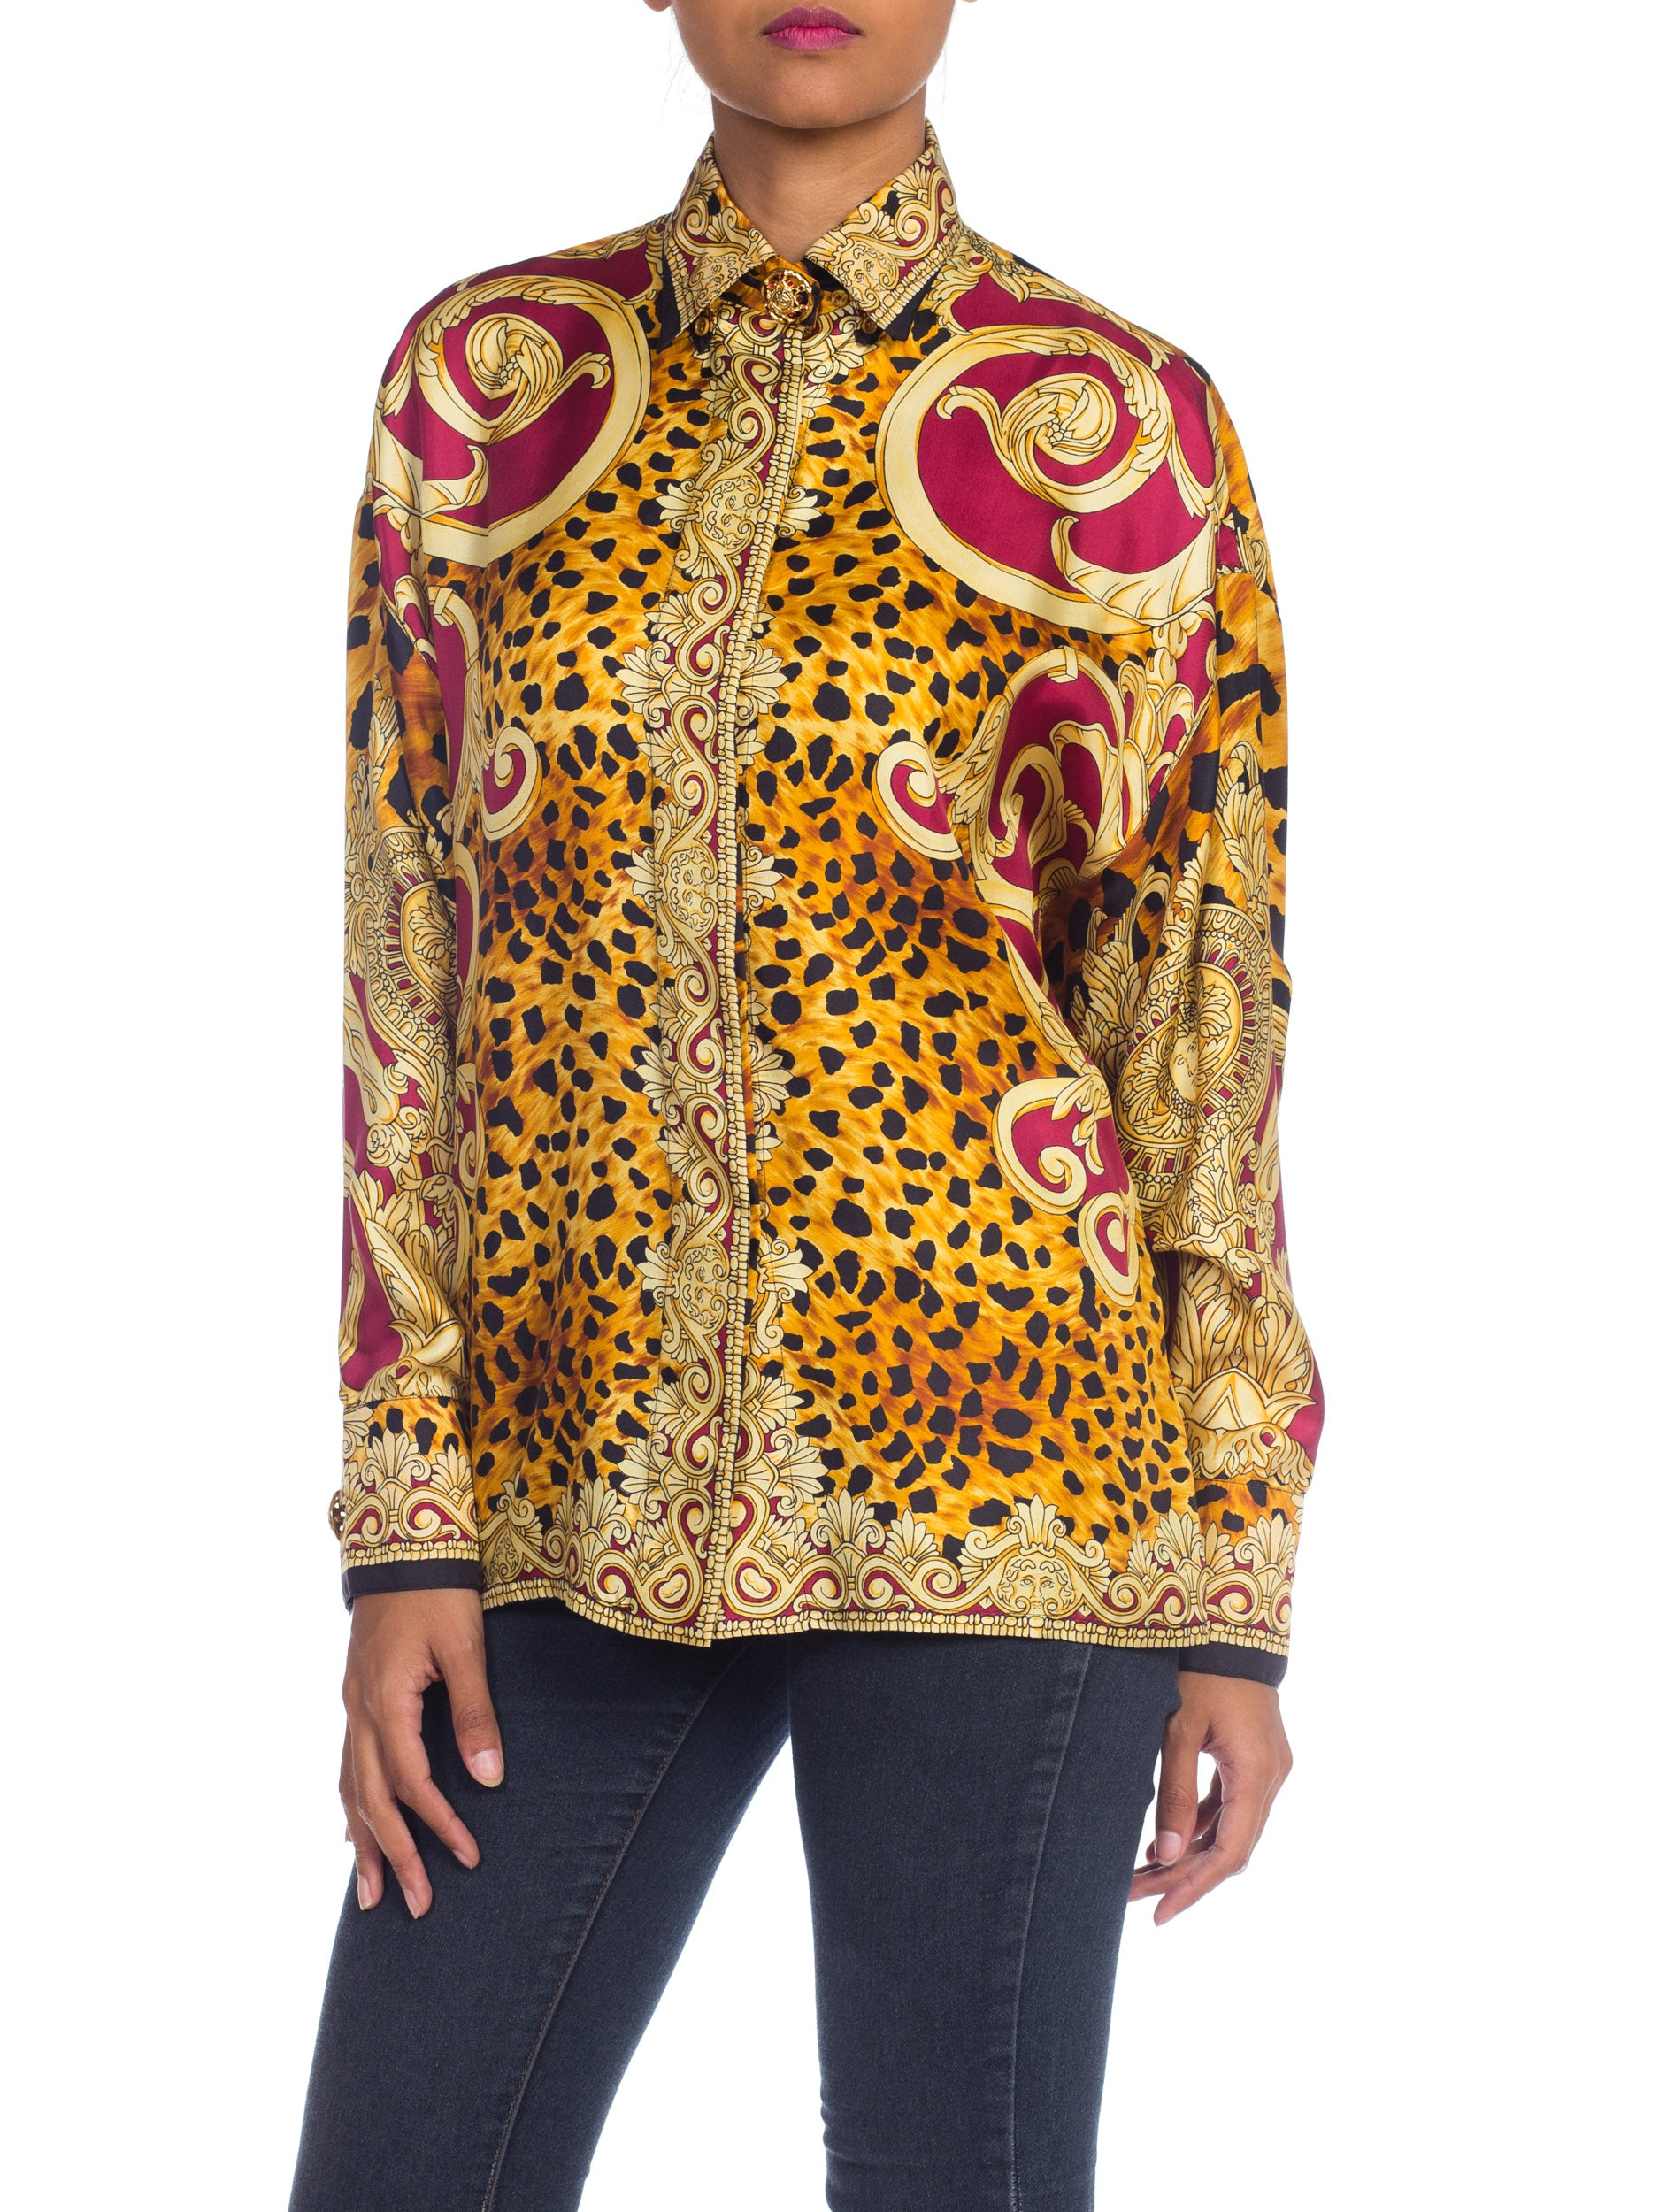 1990S GIANNI VERSACE Gold Baroque & Leopard Silk Shirt With Crystals Buttons